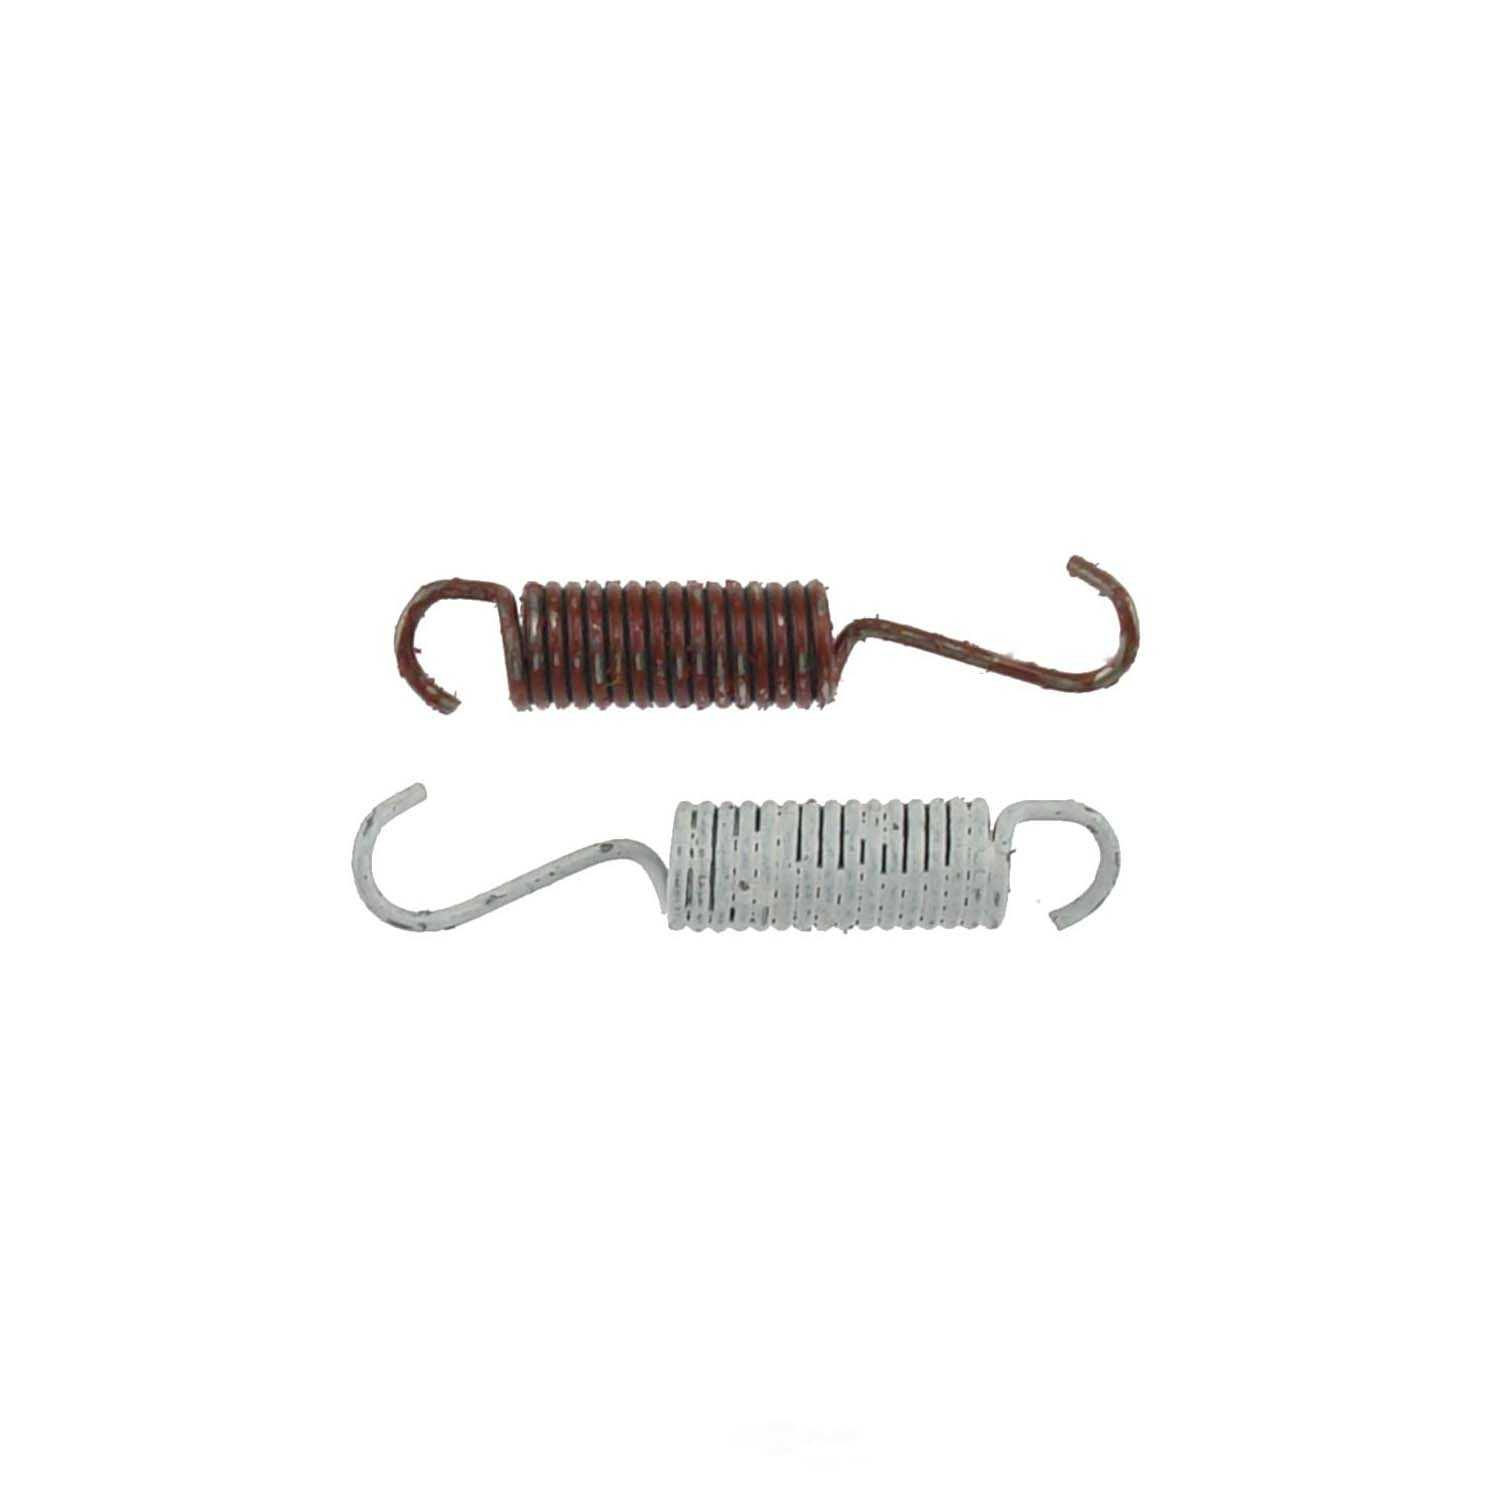 CARLSON QUALITY BRAKE PARTS - Drum Brake Adjusting Spring Kit - CRL H450